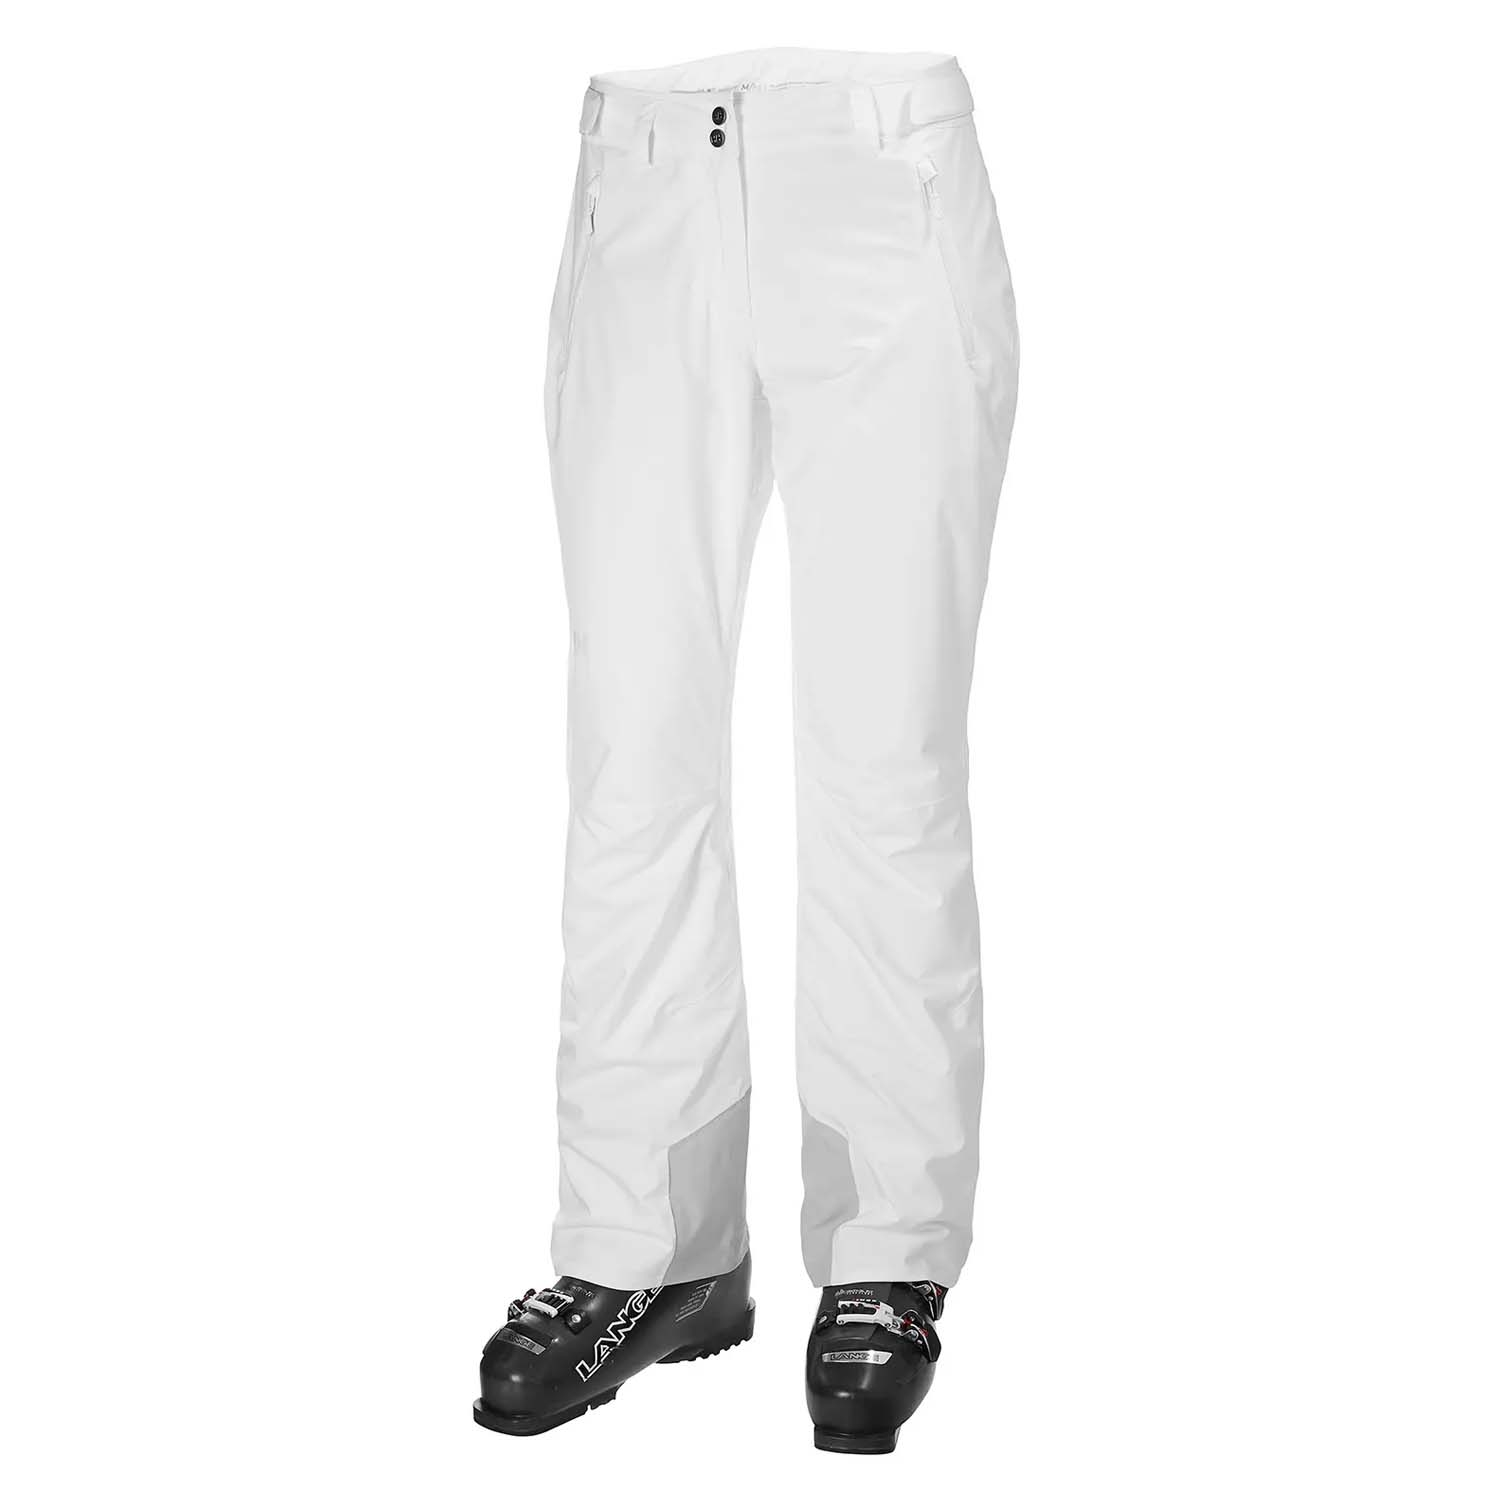 Helly Hansen Womens Legendary Insulated Pant White 2020